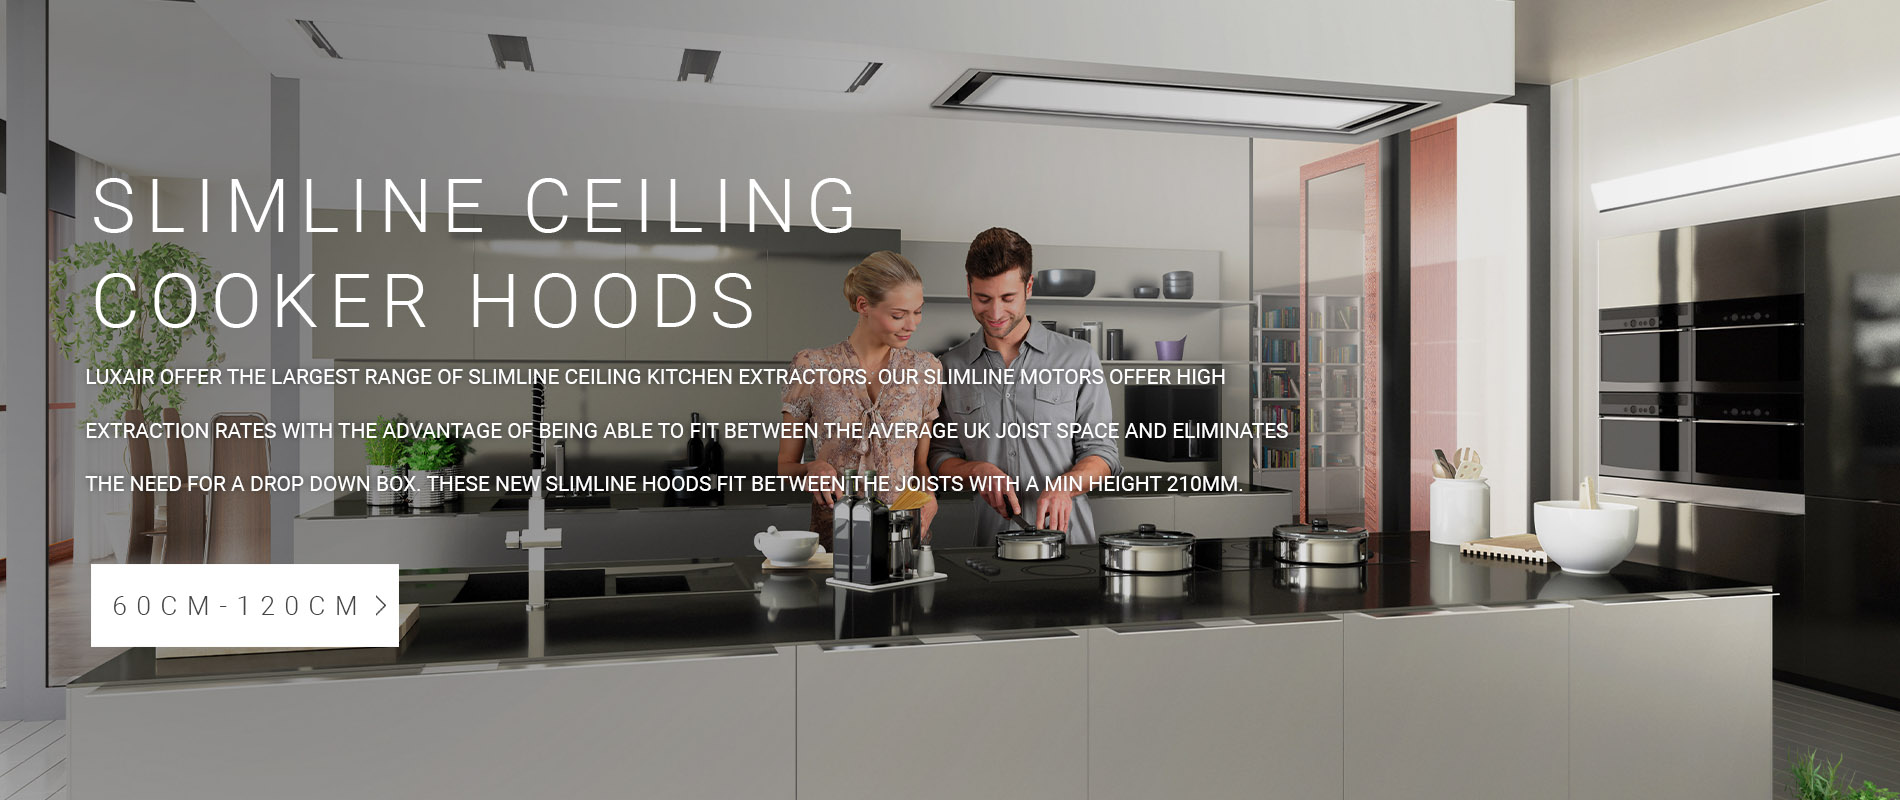 Slimline Ceiling Kitchen Extractors